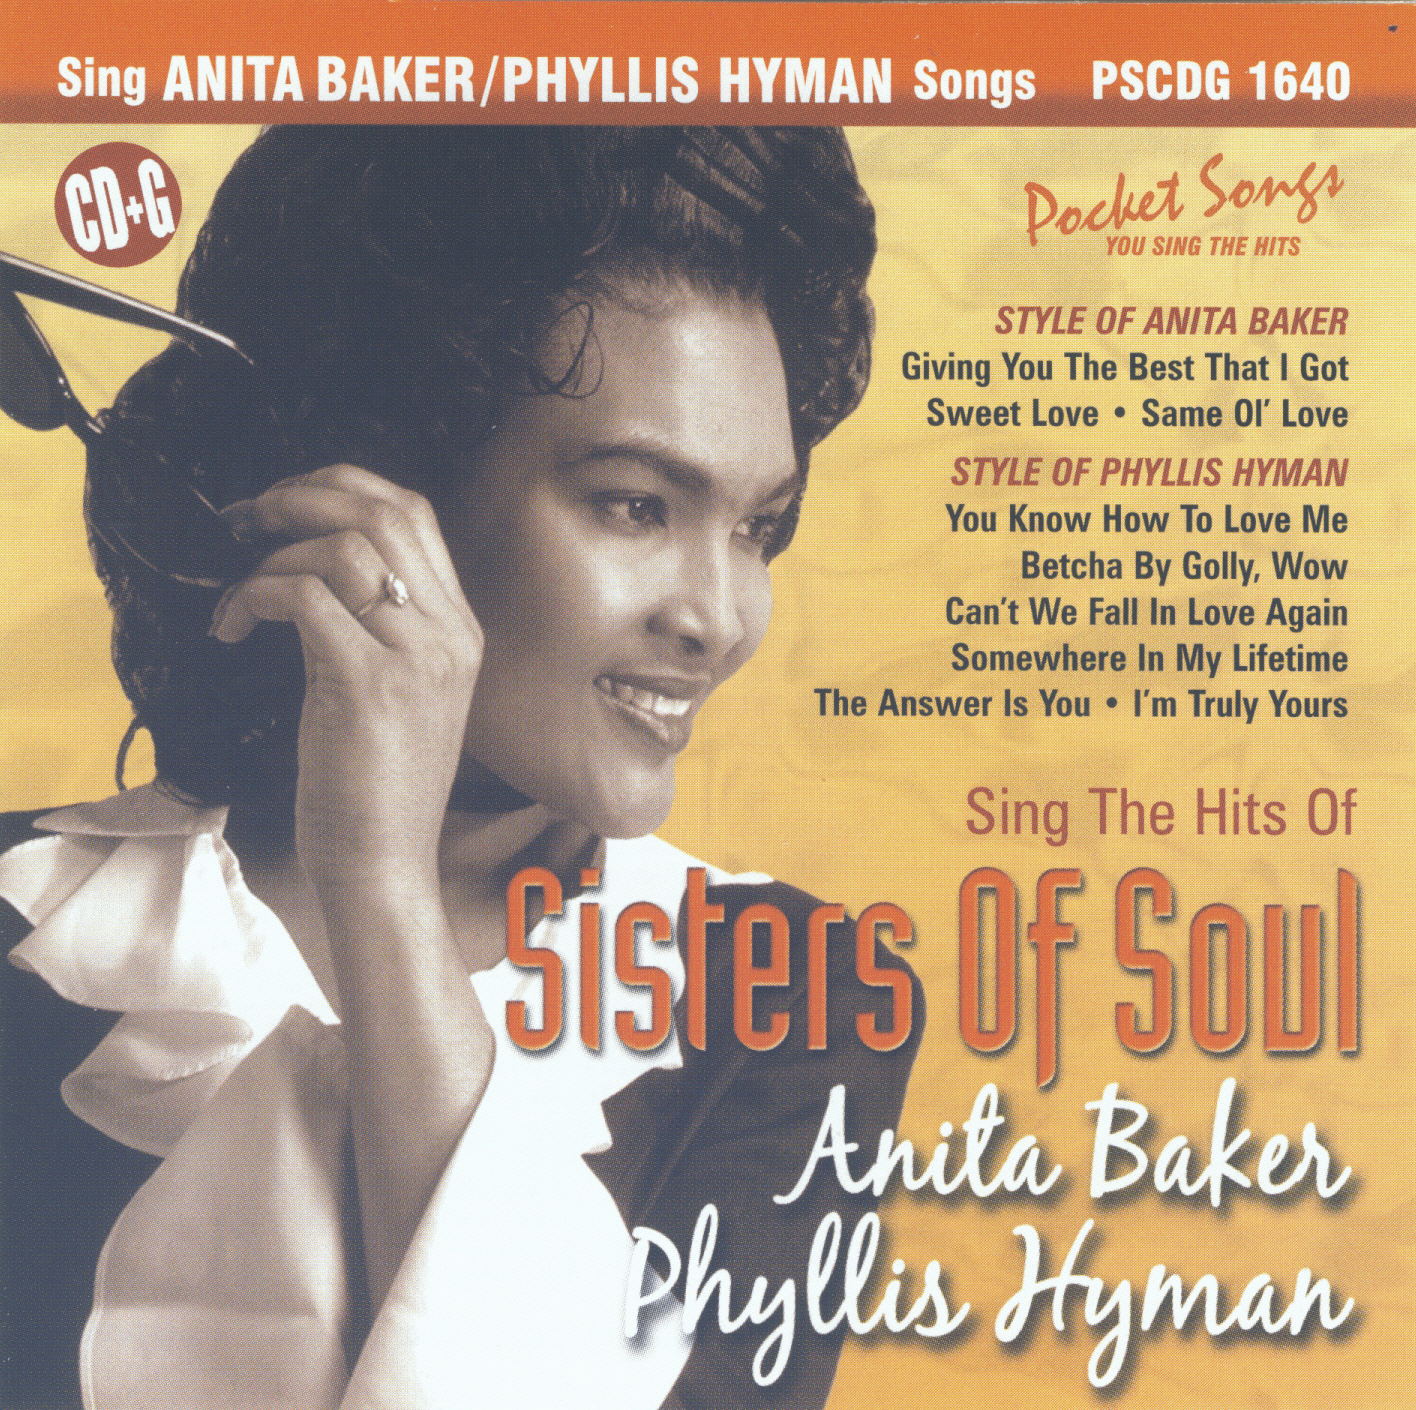 ANITA BAKER & PHYLLIS HYMAN     Sisters Of Soul Pocket Songs    PS1640